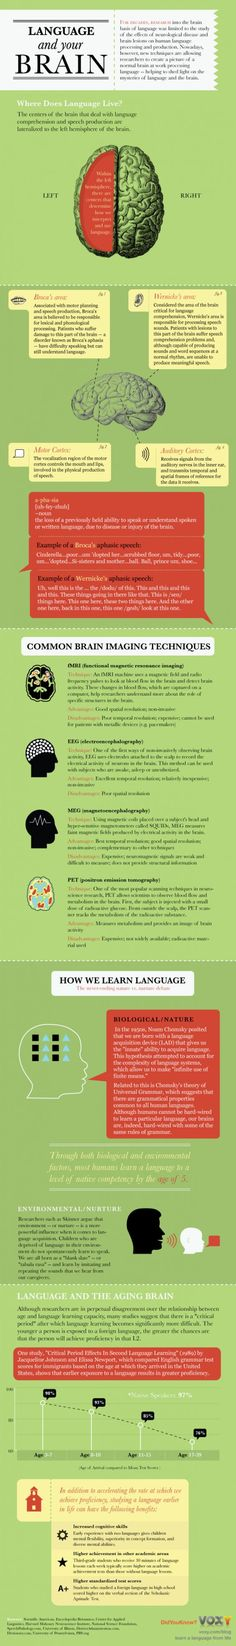 Educational infographic & data visualisation   Language and the brain.  Repinned by SOS Inc. Resources.  Follow all our boards …   Infographic   Description  Language and the brain.  Repinned by SOS Inc. Resources.  Follow all our boards at pinterest.com/…  for therapy...